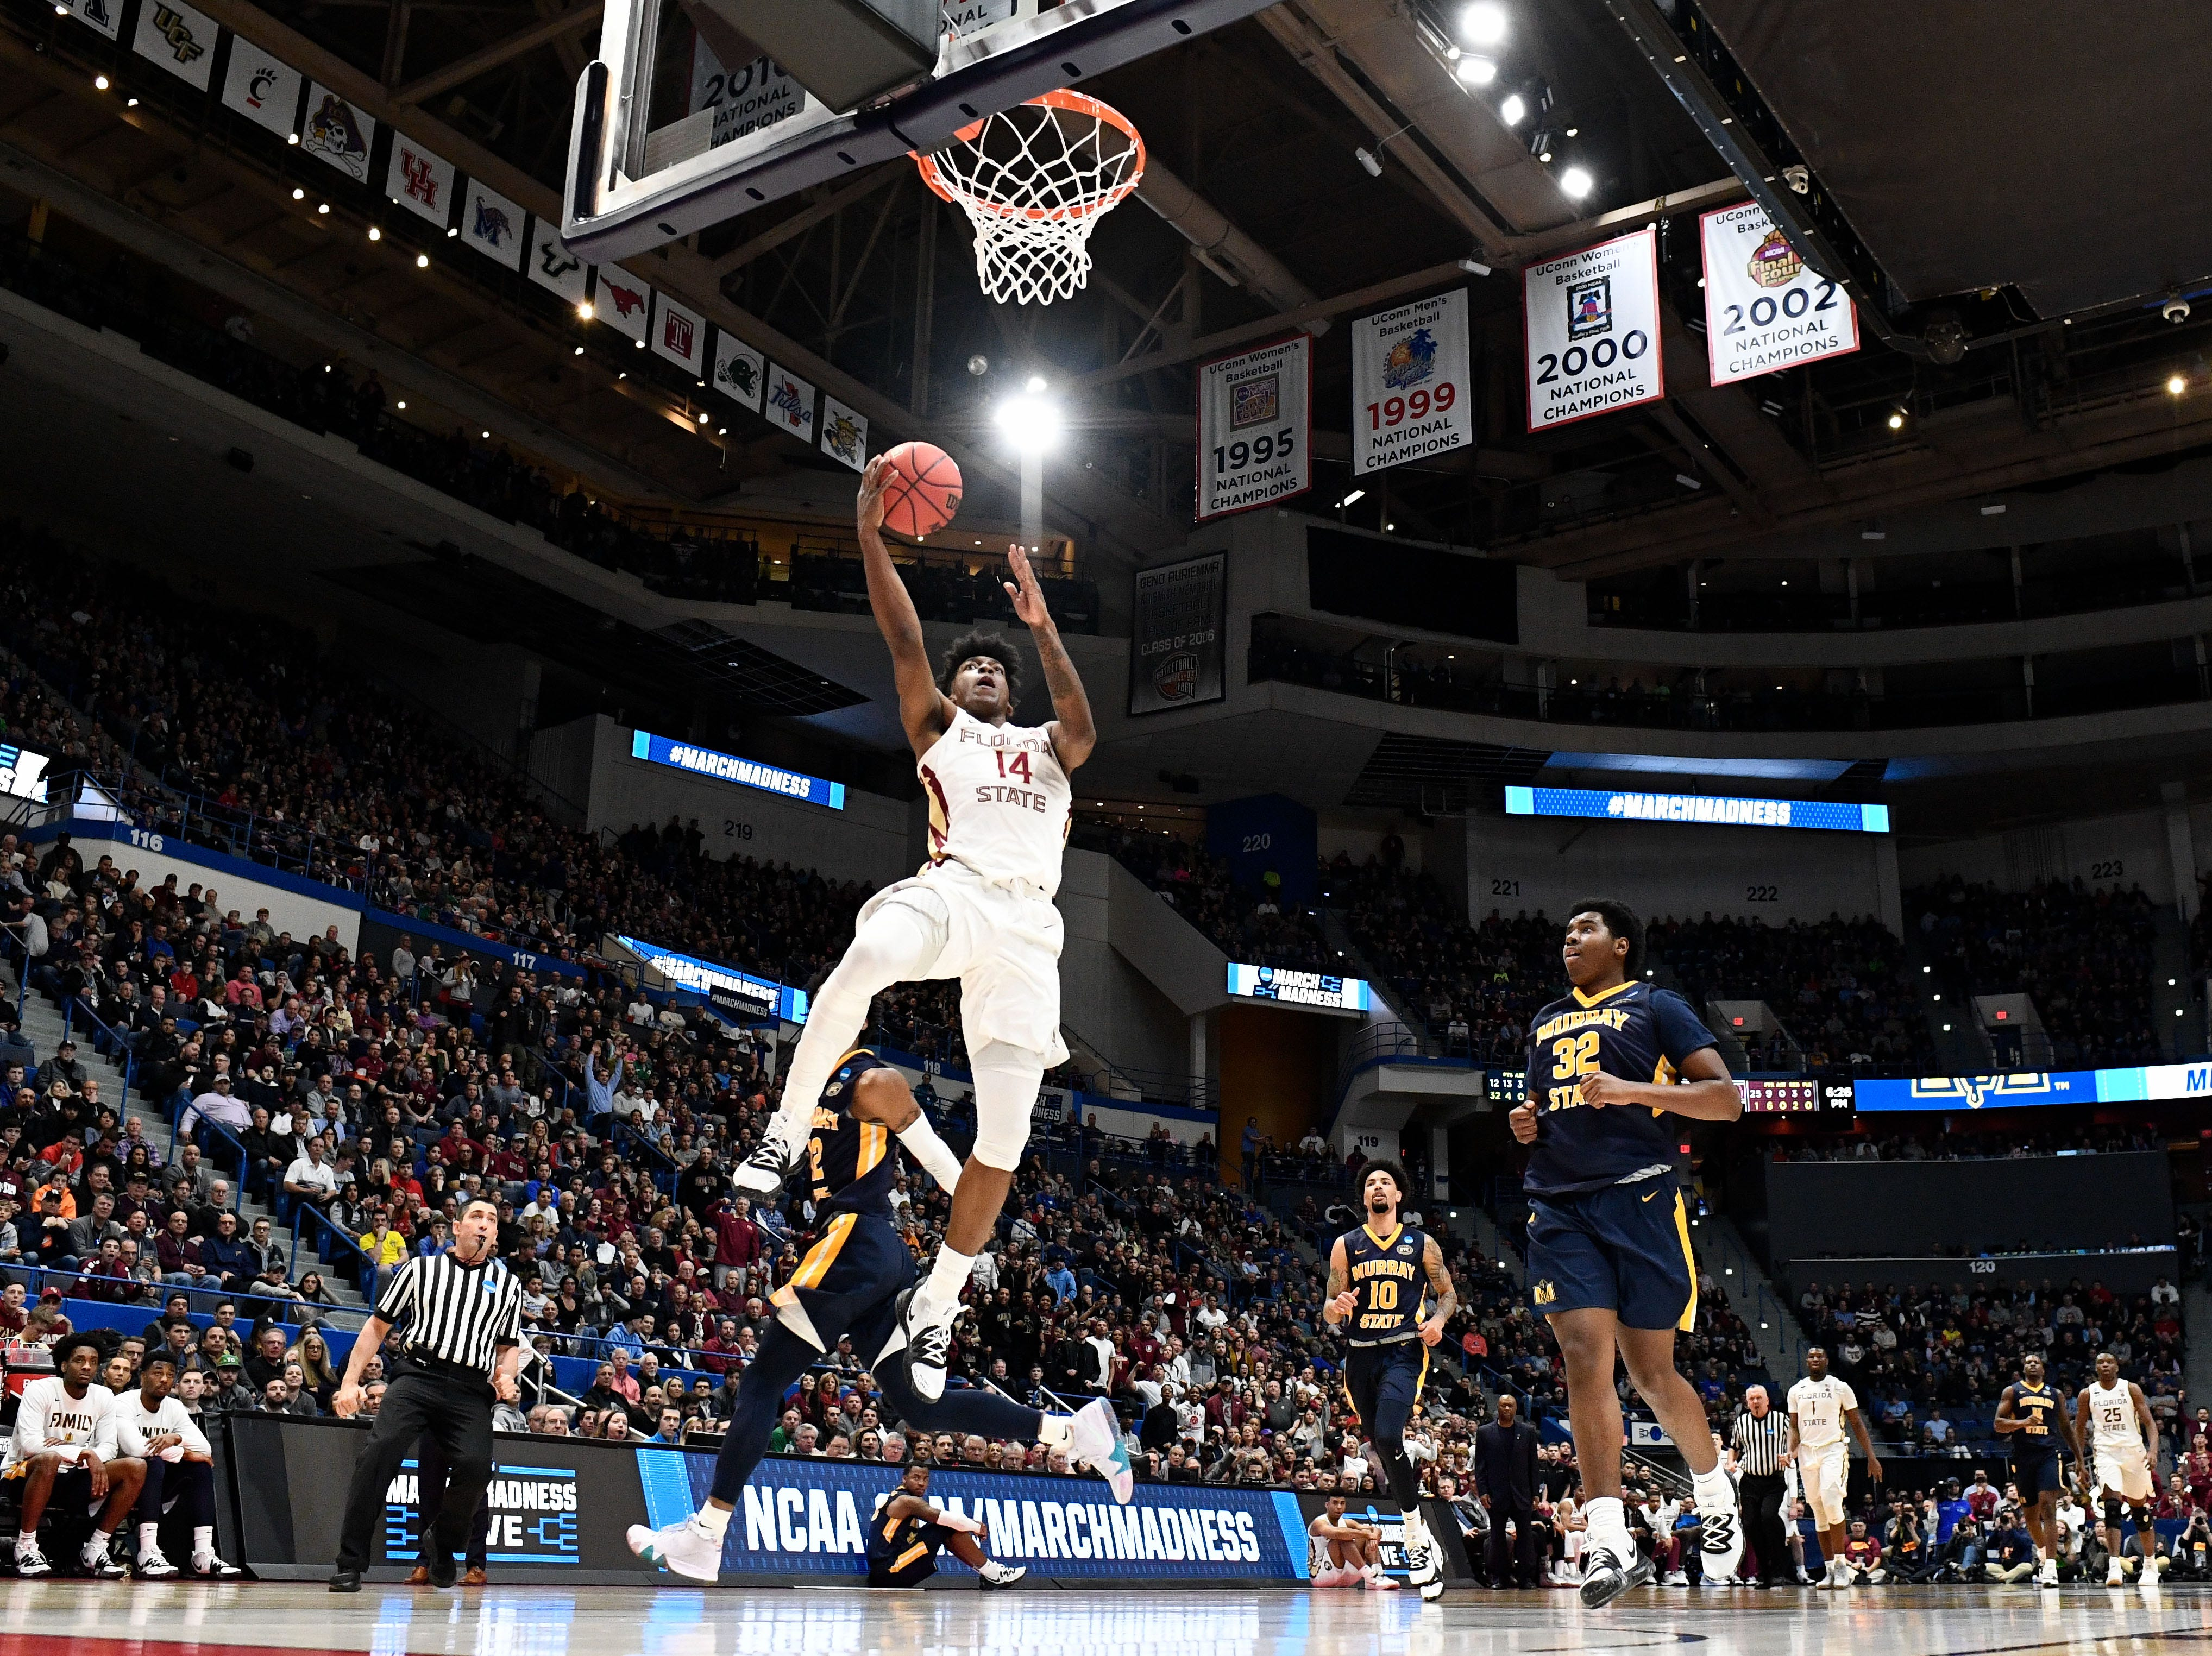 Mar 23, 2019; Hartford, CT, USA; Murray State Racers guard Jaiveon Eaves (14) attempts a layup against the Murray State Racers during the first half of a game in the second round of the 2019 NCAA Tournament at XL Center. Mandatory Credit: Robert Deutsch-USA TODAY Sports